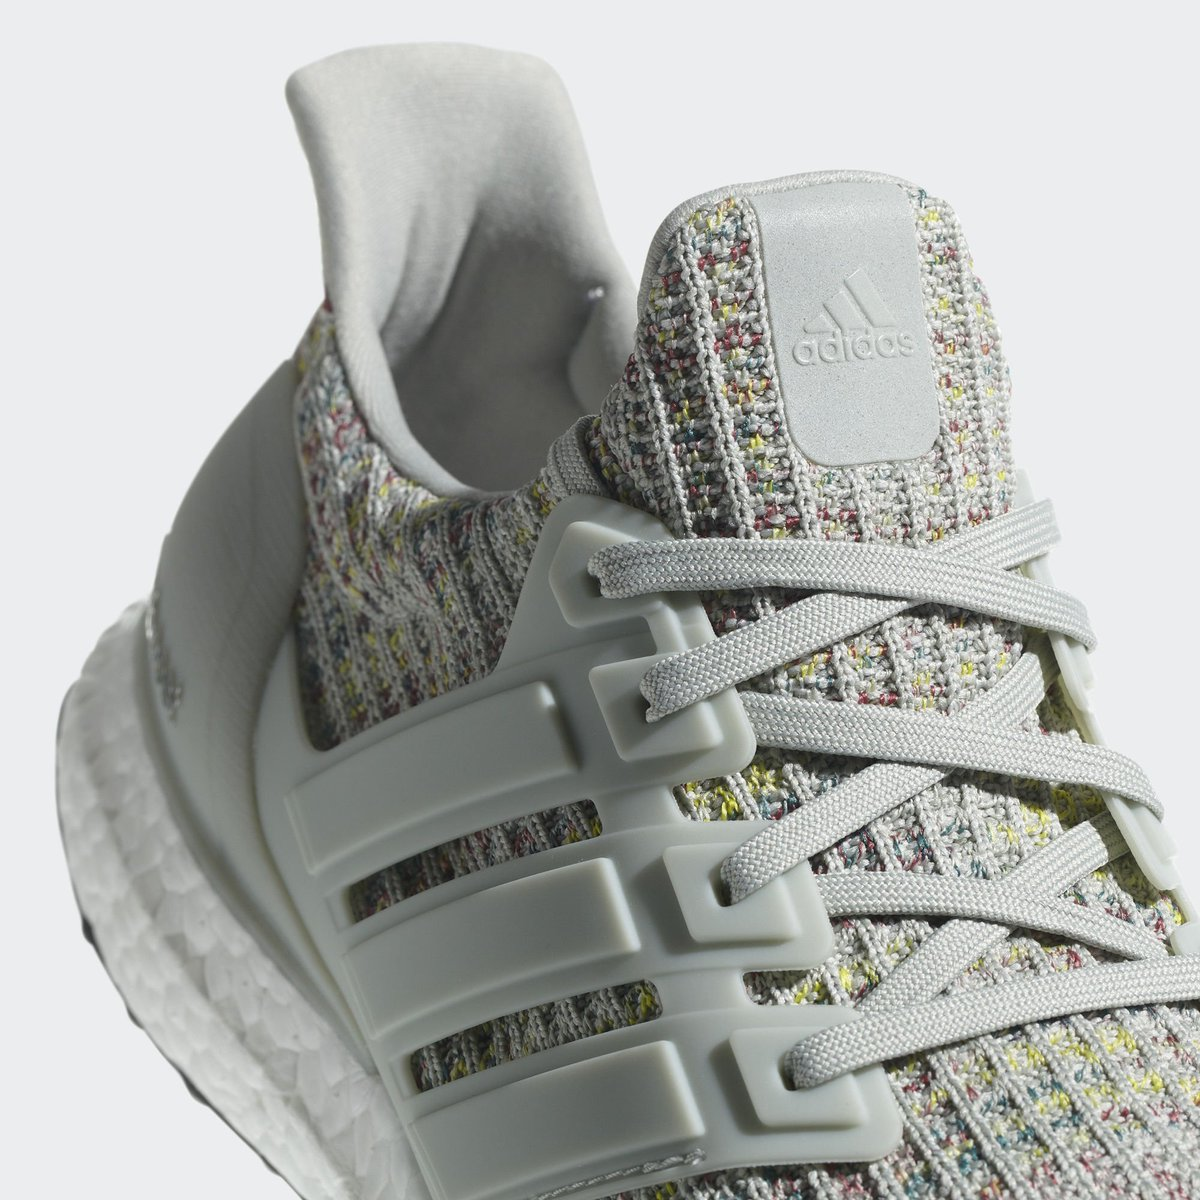 Adidas Alerts On Twitter Official Adidas Images Of The Ash Silver